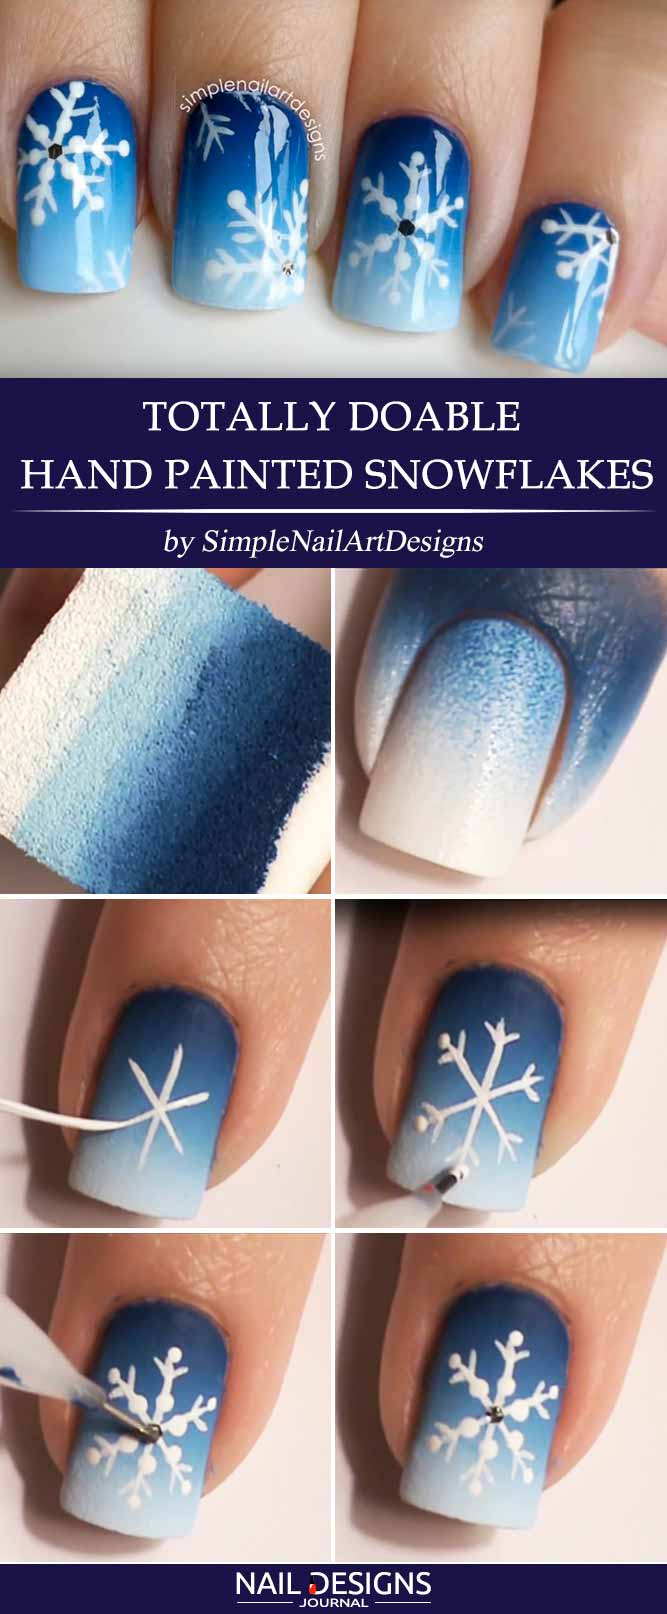 Totally Doable Hand Painted Snowflakes